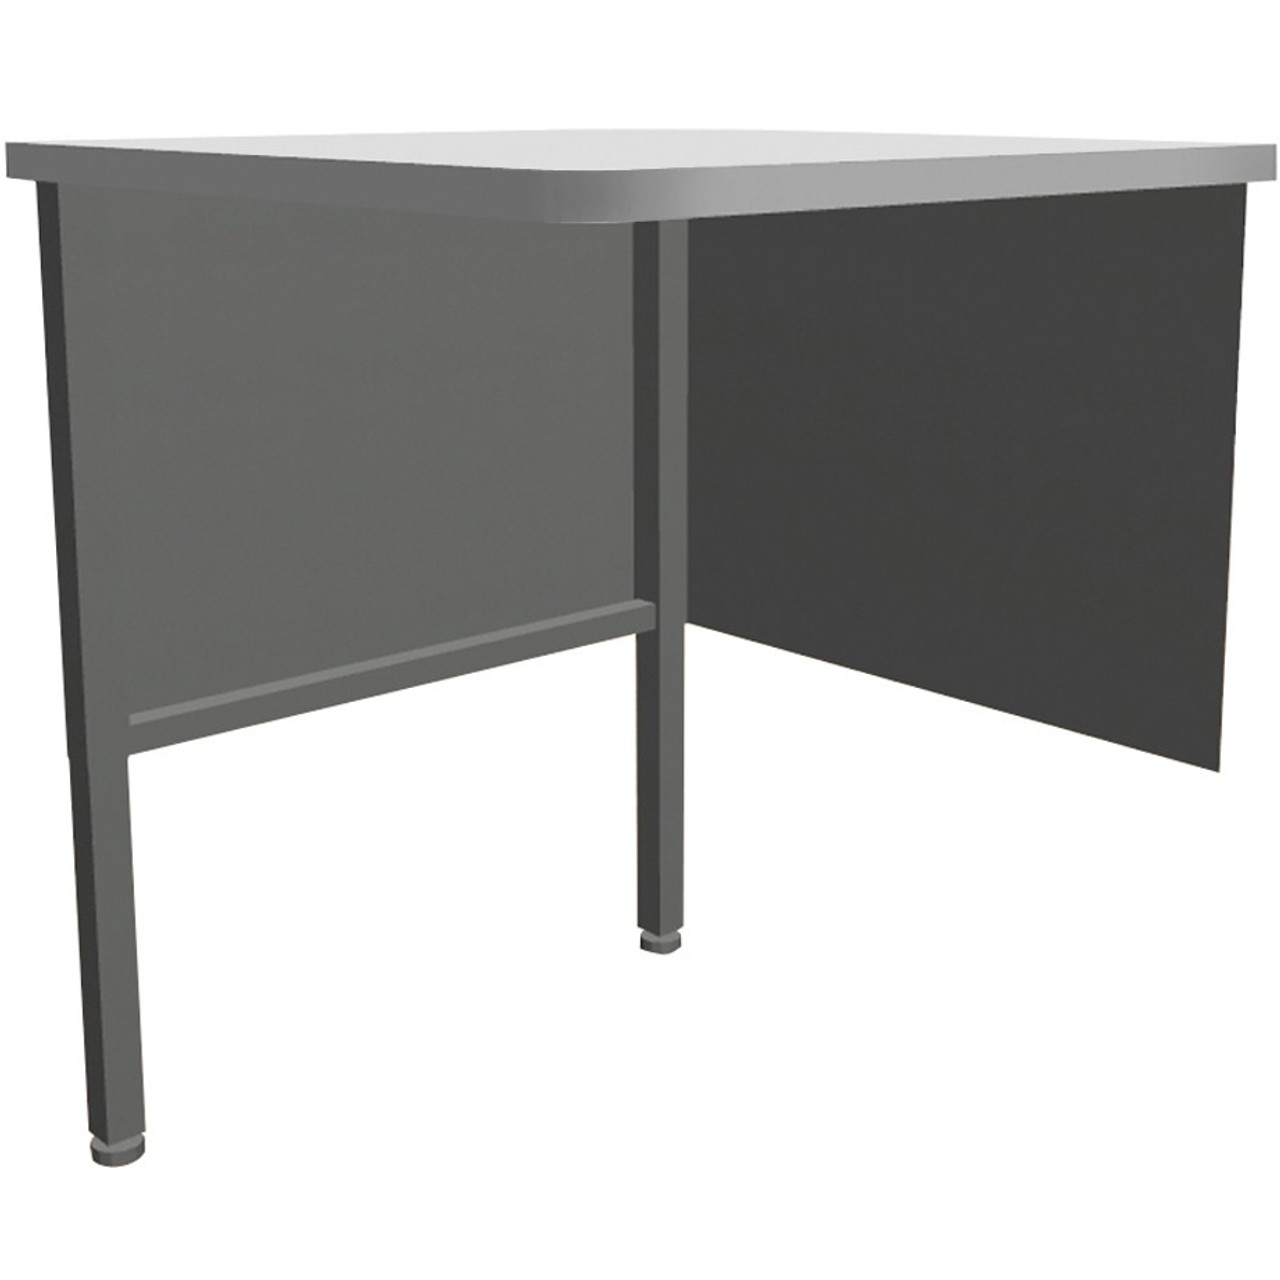 Marvel utcr30 utility corner table 30 inch